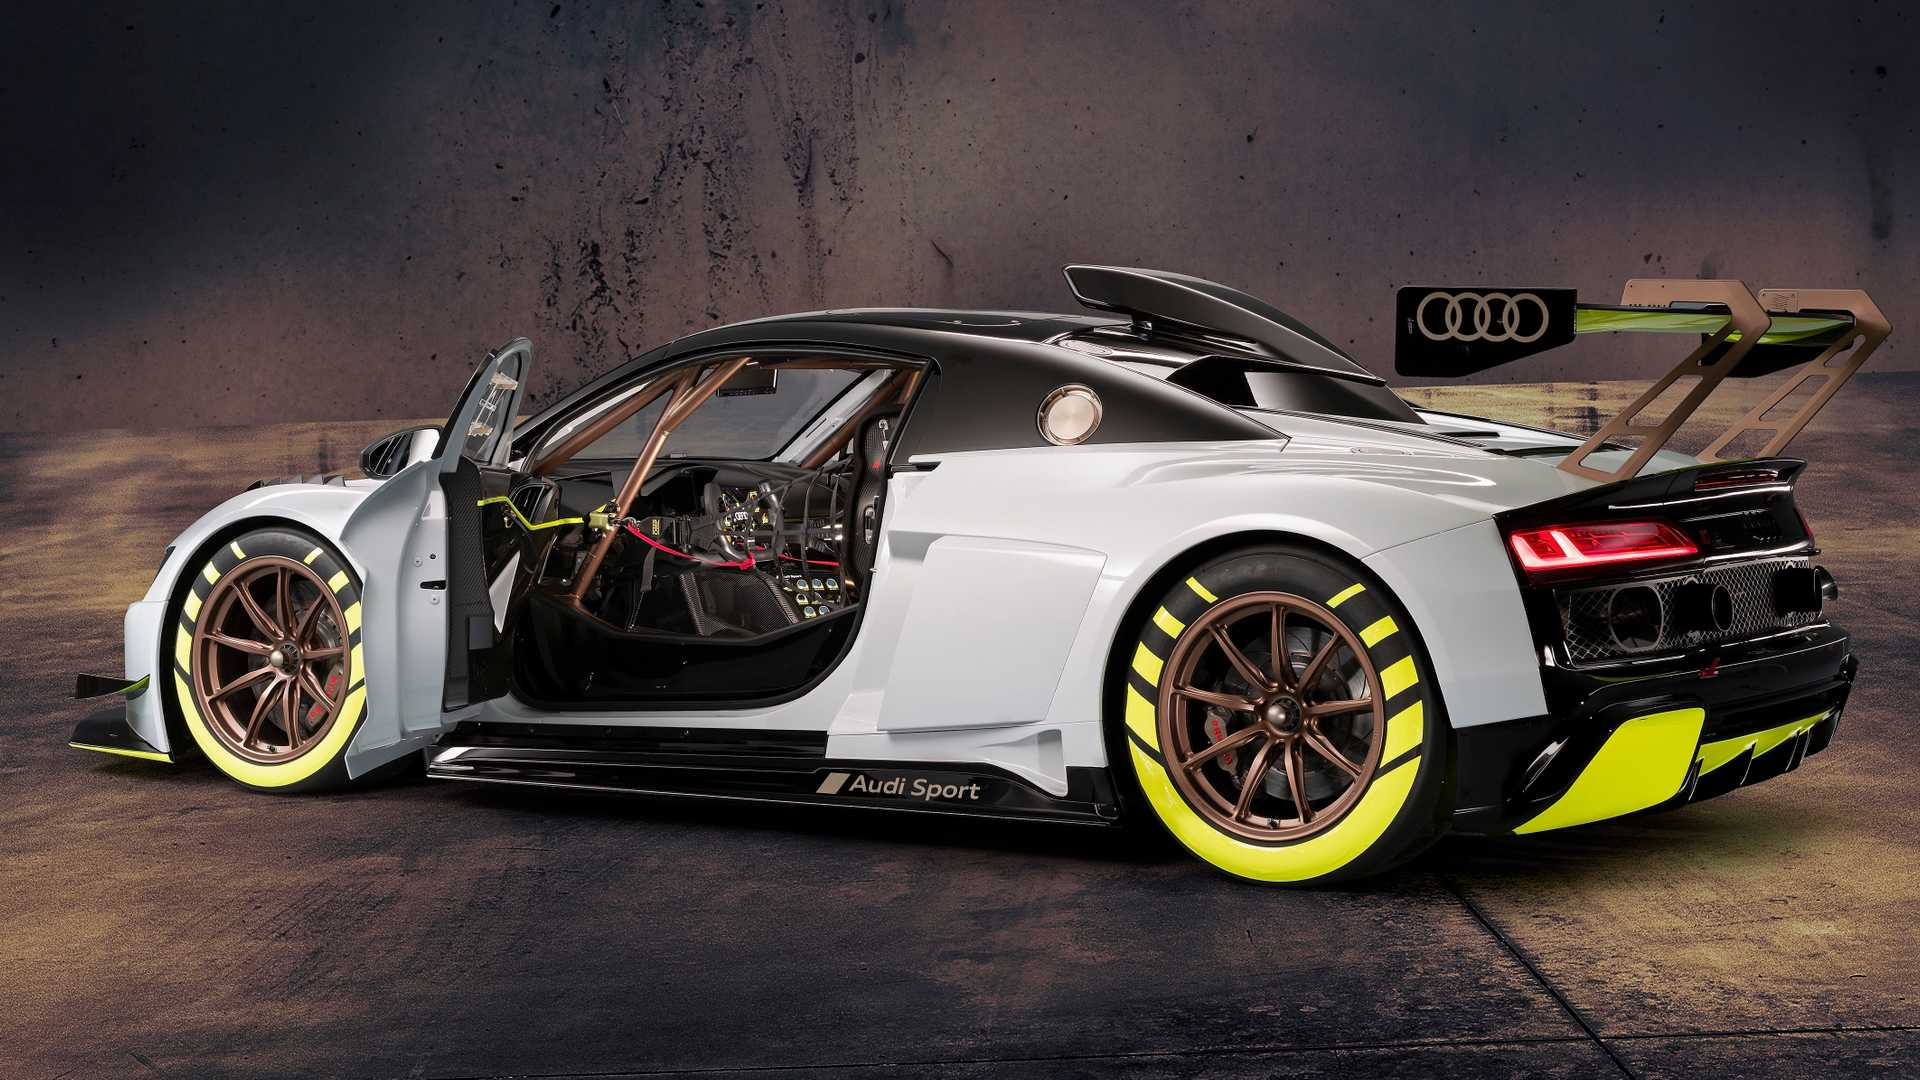 2020 Audi R8 Lms Gt2 Is A Wild Race Car With 630 Hp Update